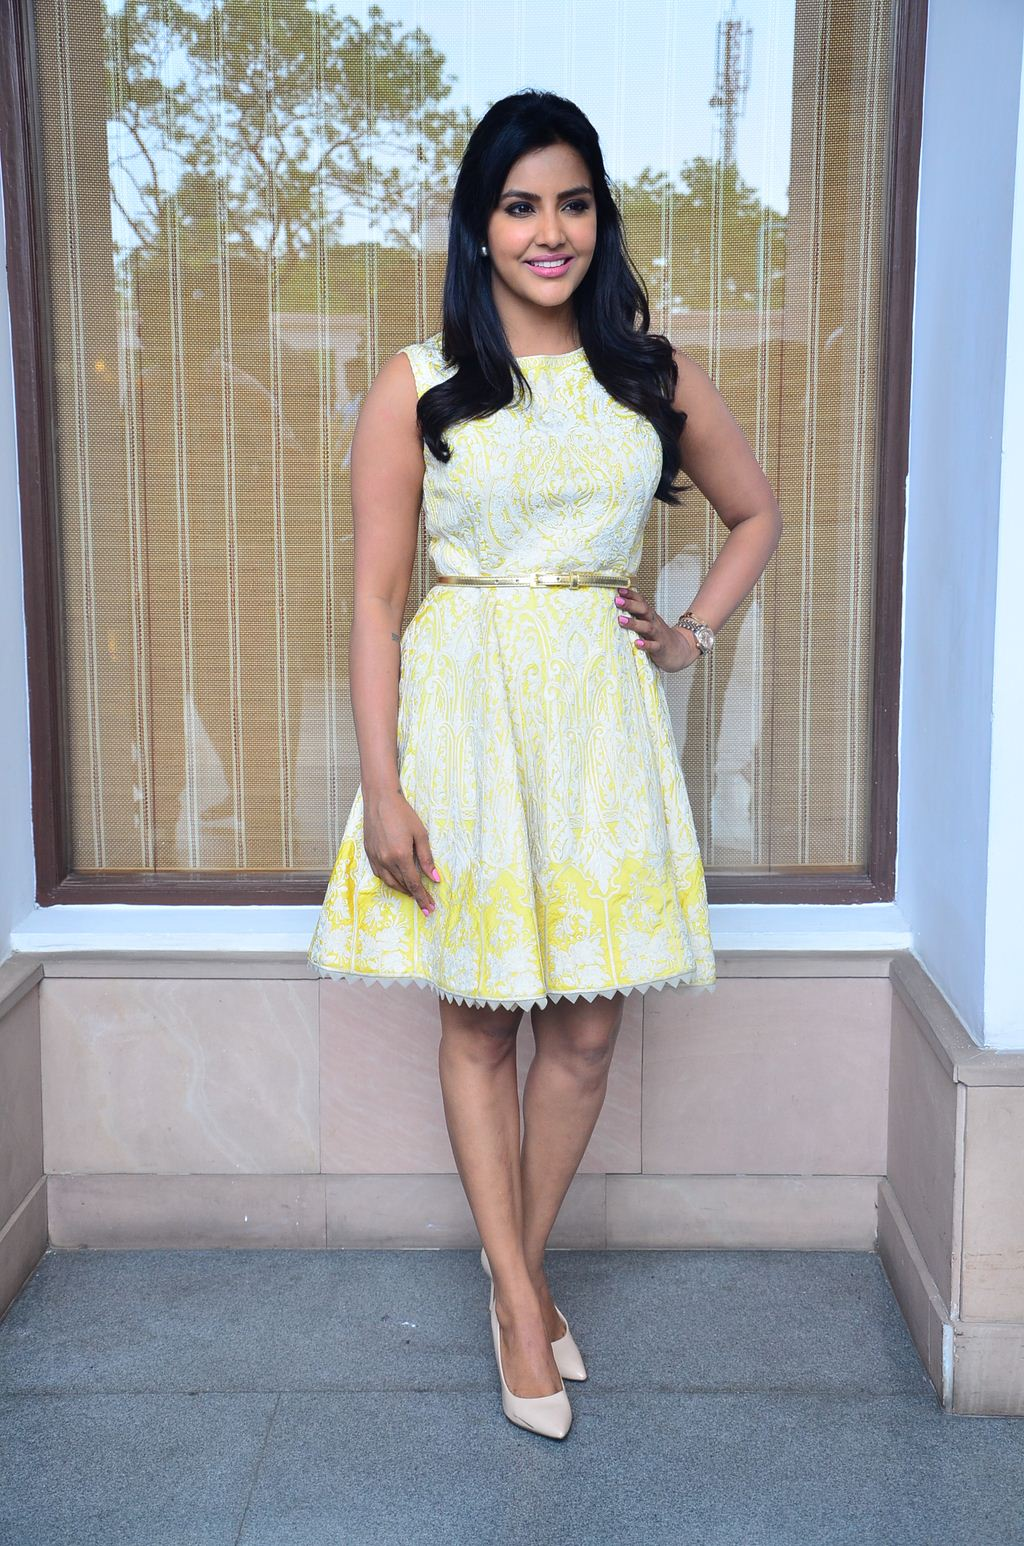 FILM ACTRESS HOT PICS: Priya Anand Expose Milky Legs In